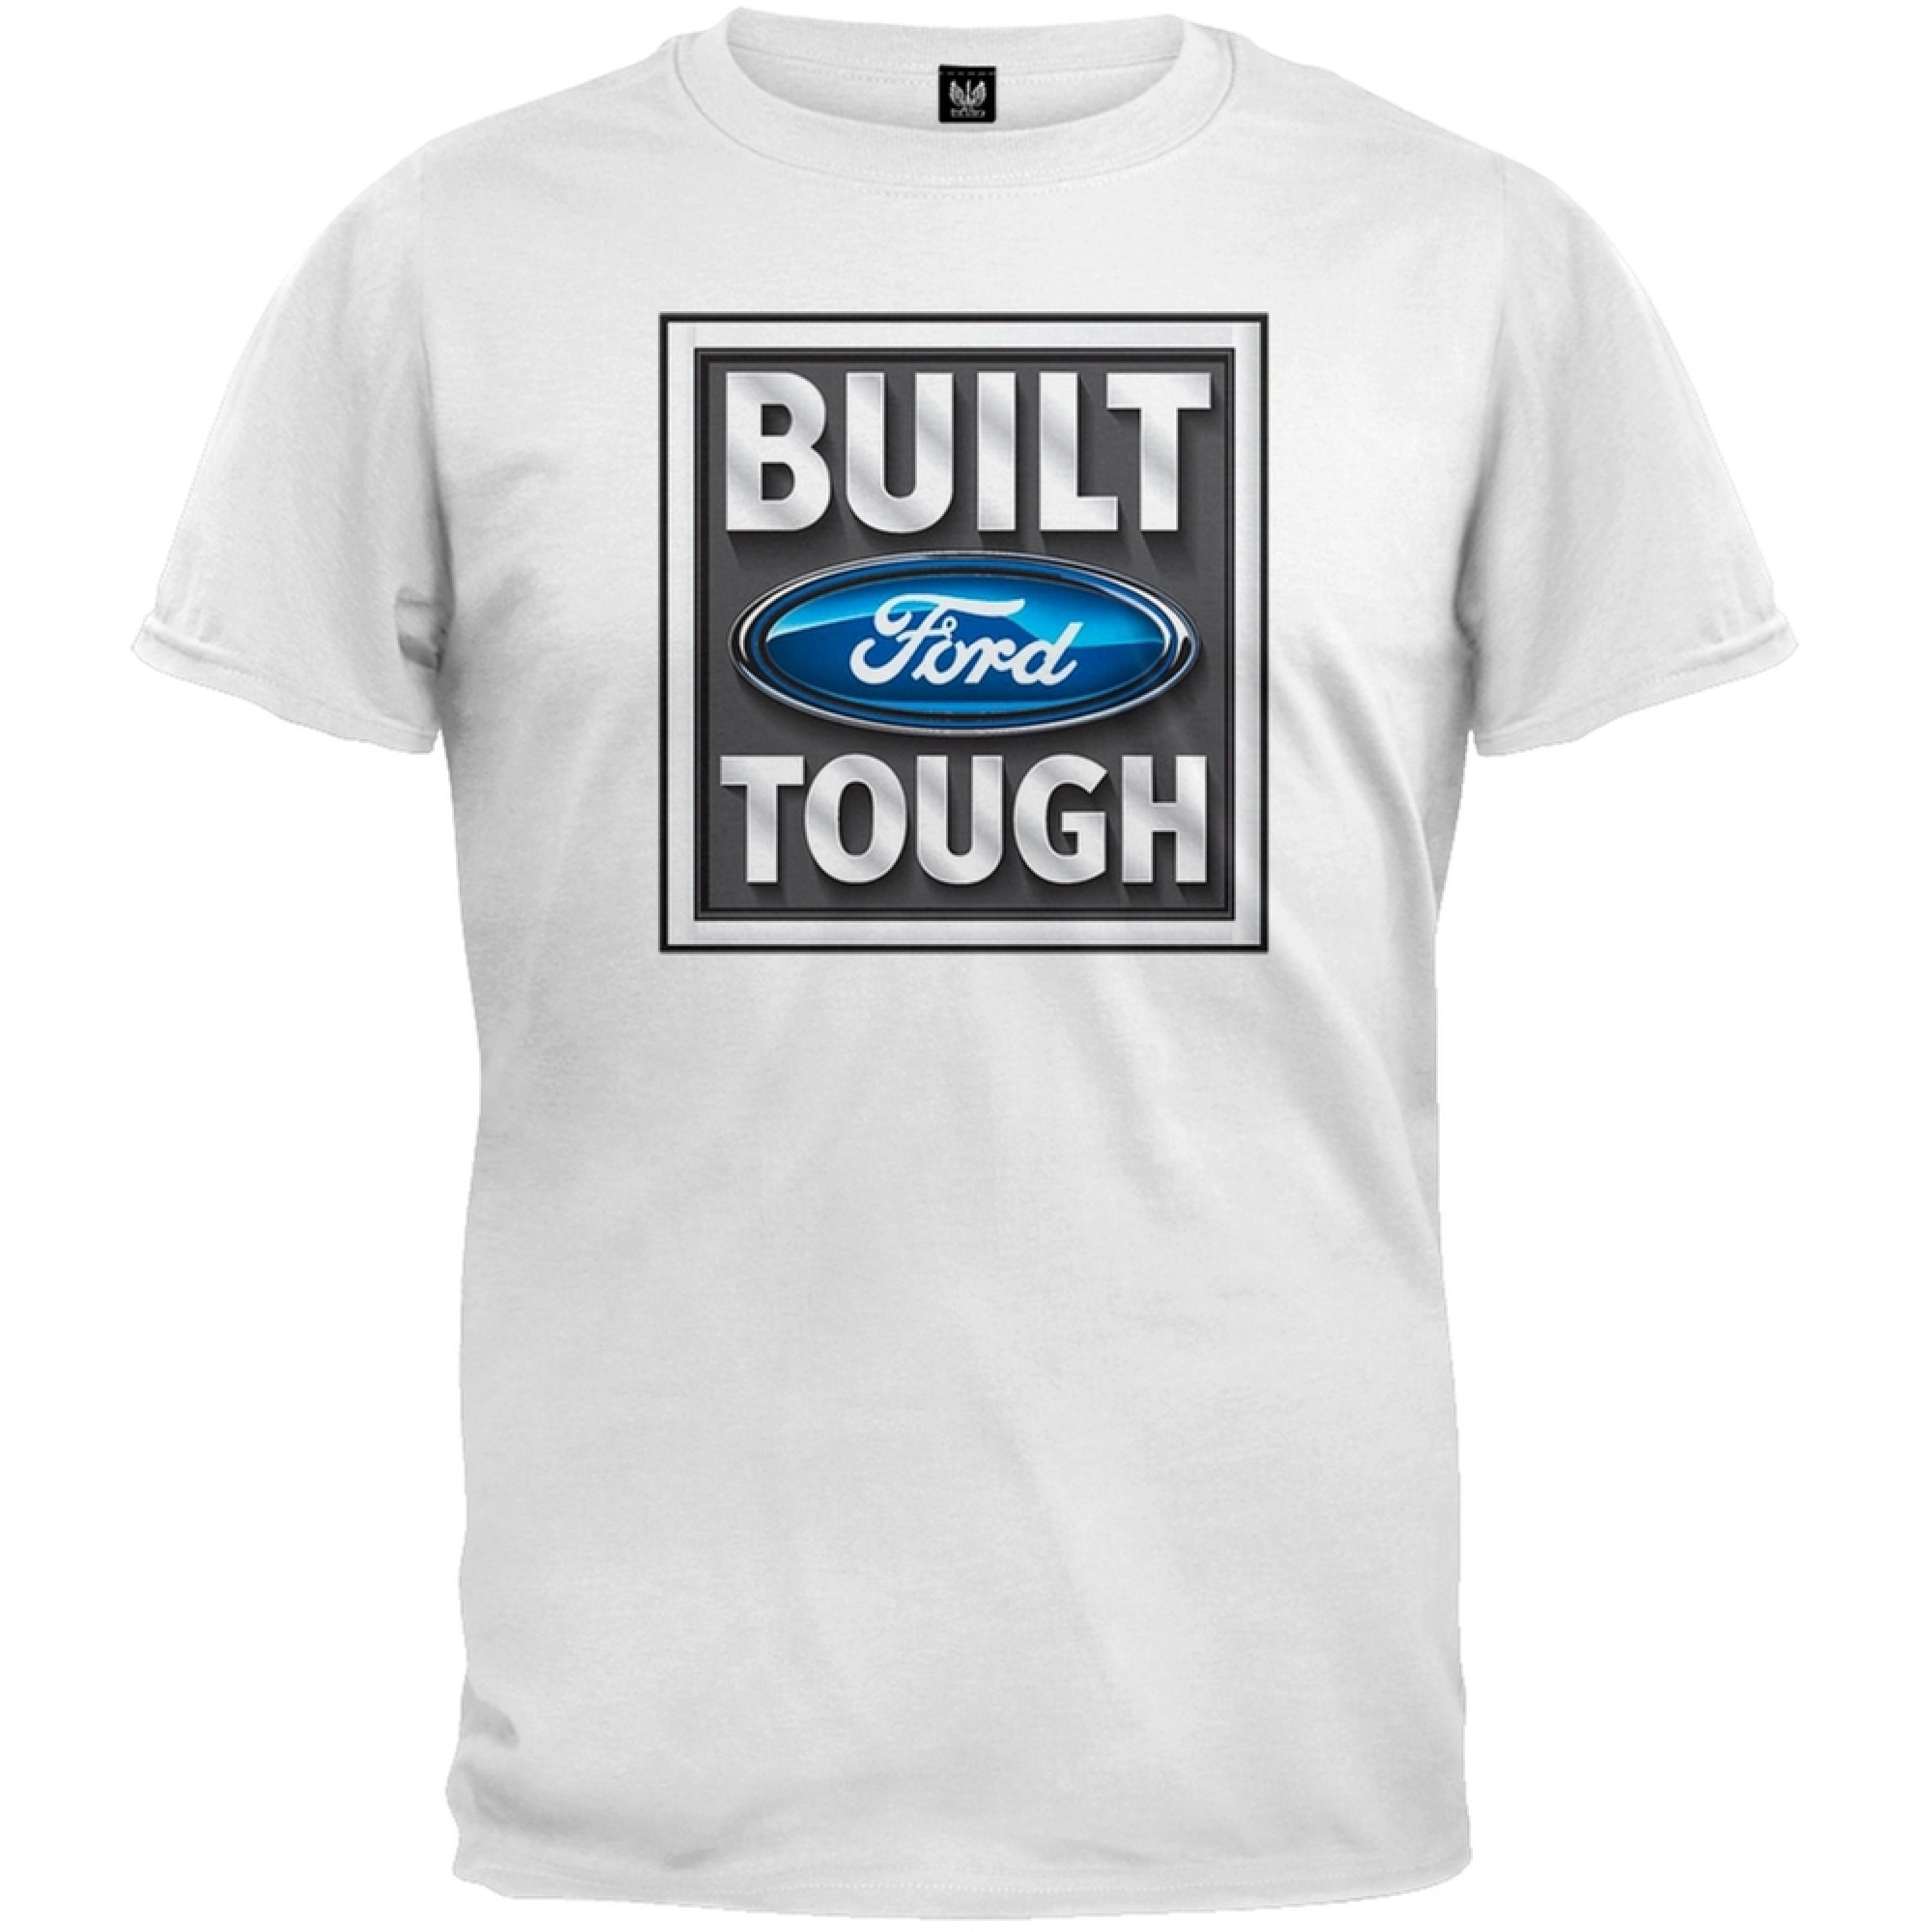 Ford - Built Tough White T-Shirt